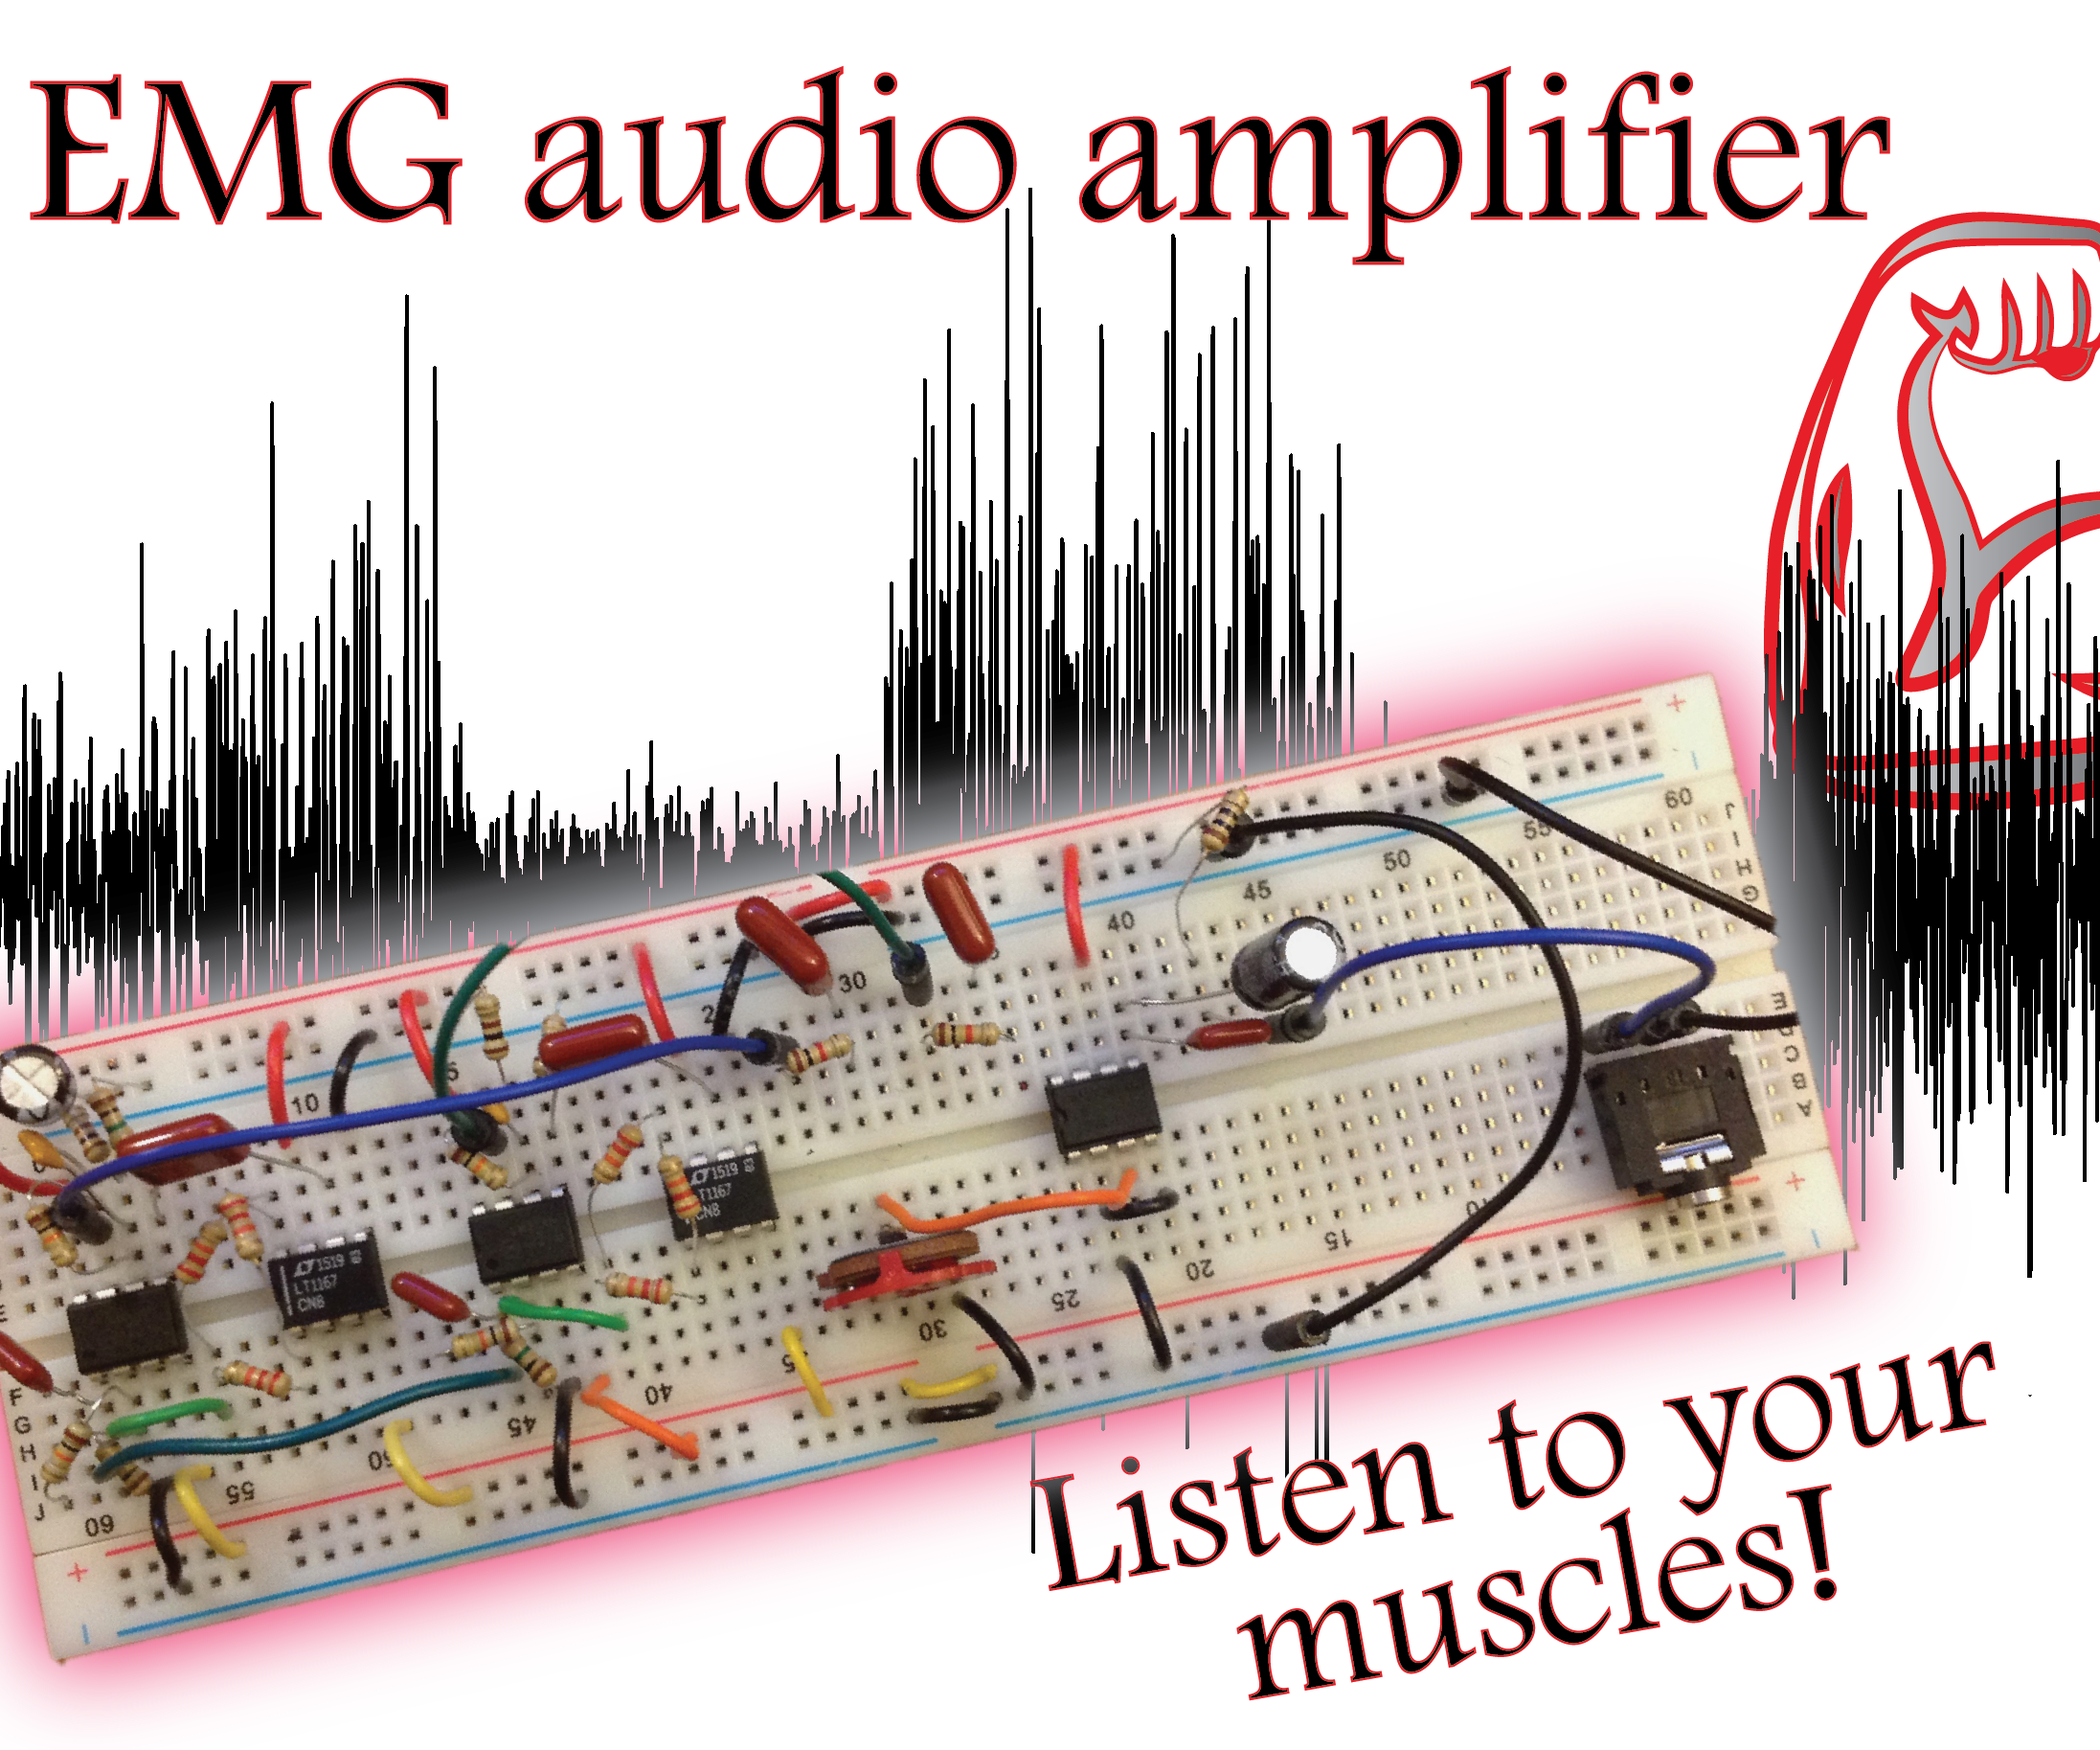 Build An Emg Audio Amplifier Electromyography 8 Steps With Instrumentation Circuit Diagram Pictures